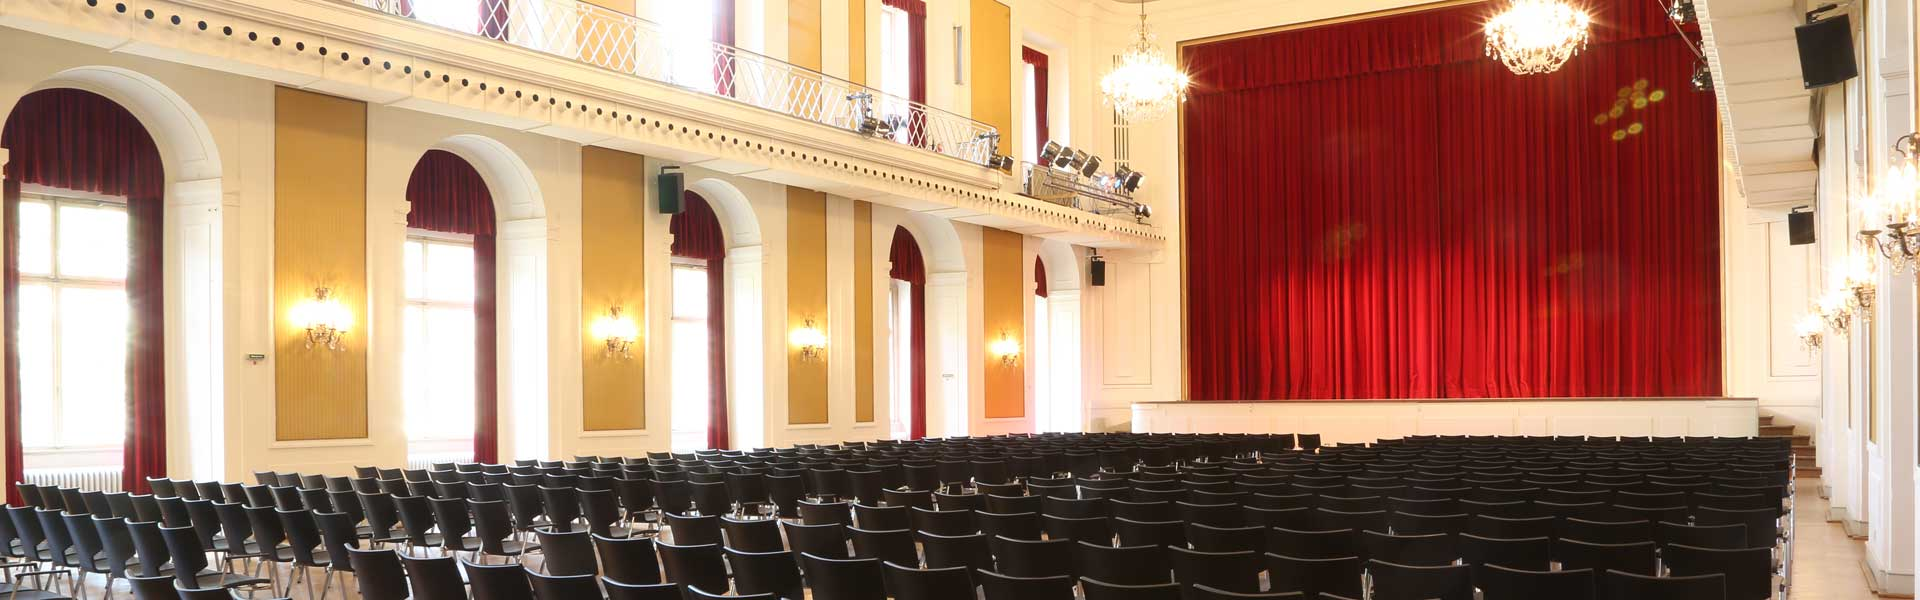 Perfect atmosphere in a historical setting